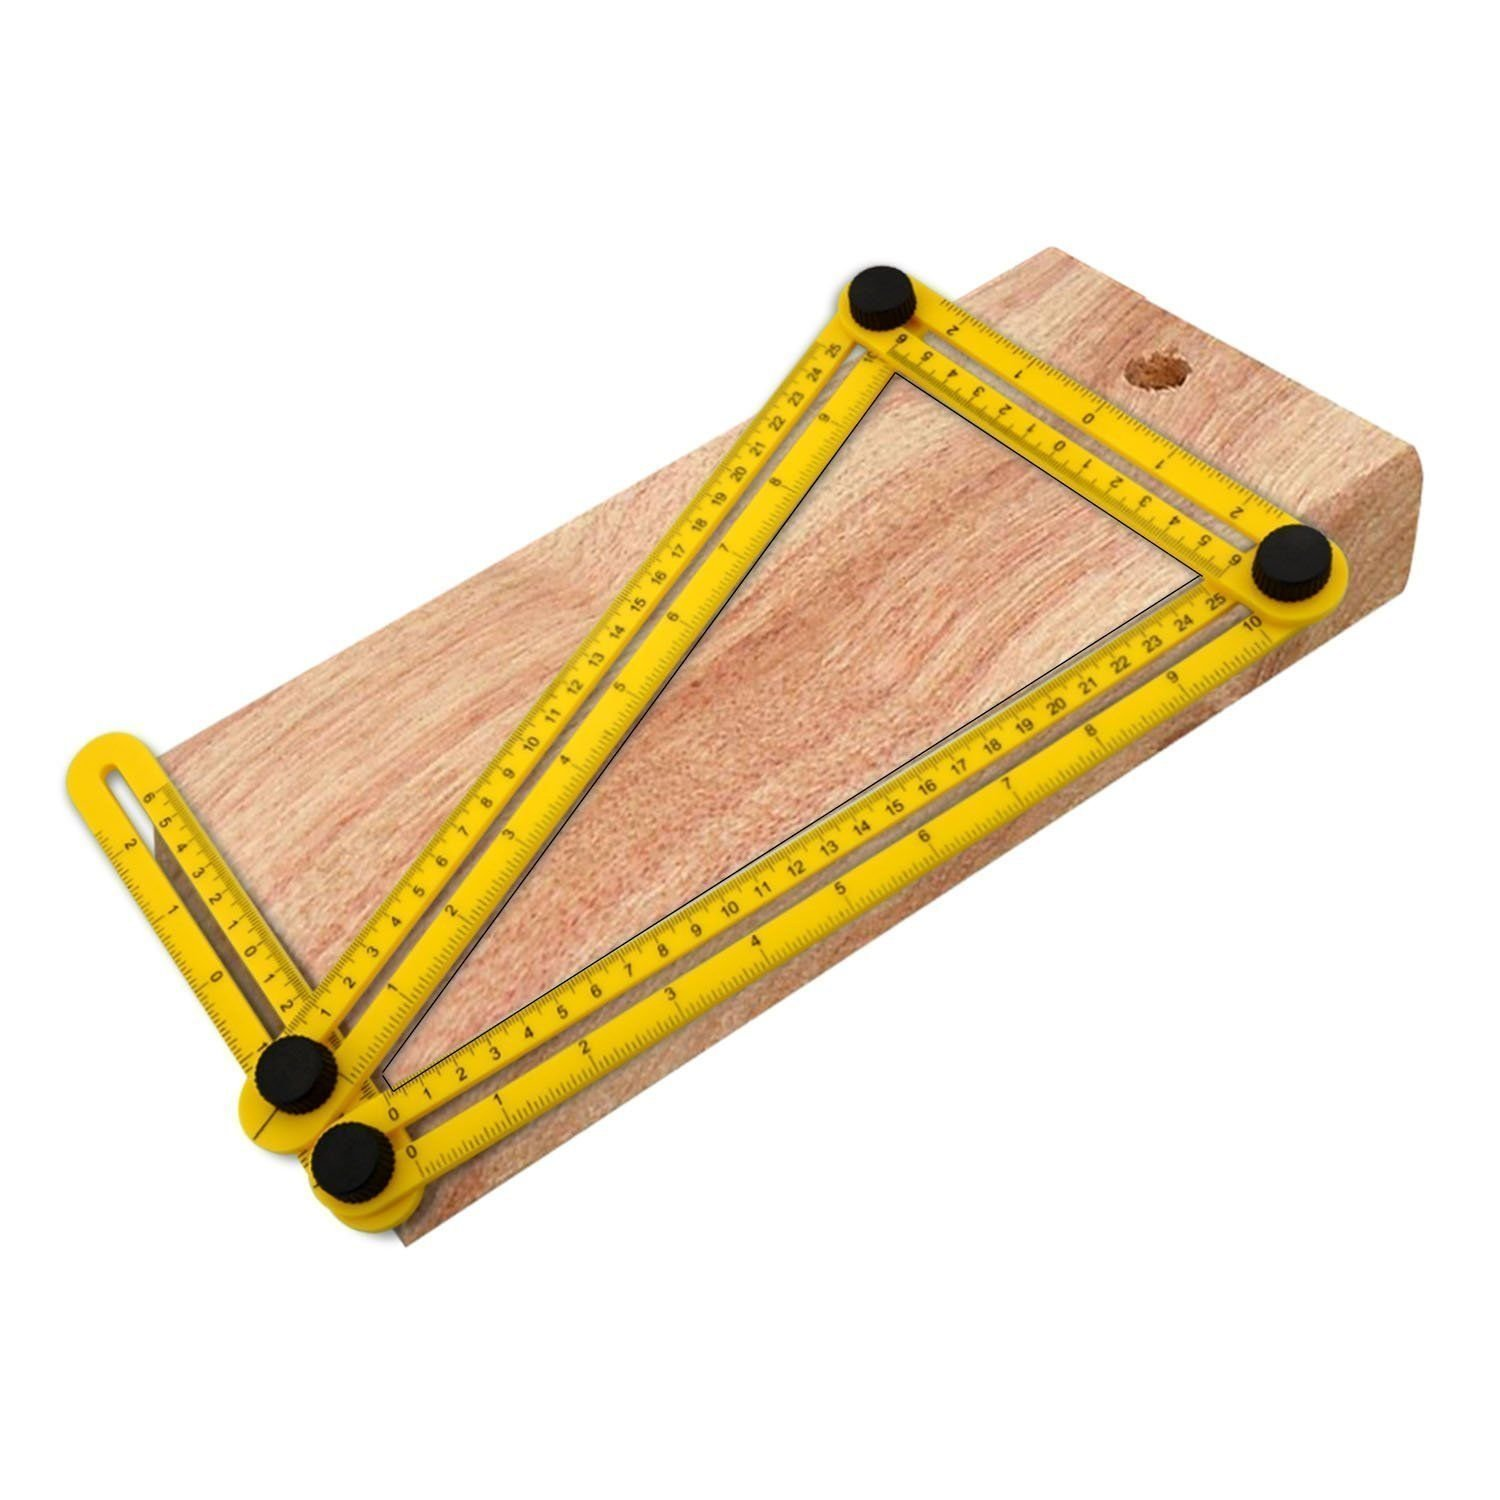 Get Quotations Angleizer Template Tool Carpenters Angle Finder For Angles Woodworking General